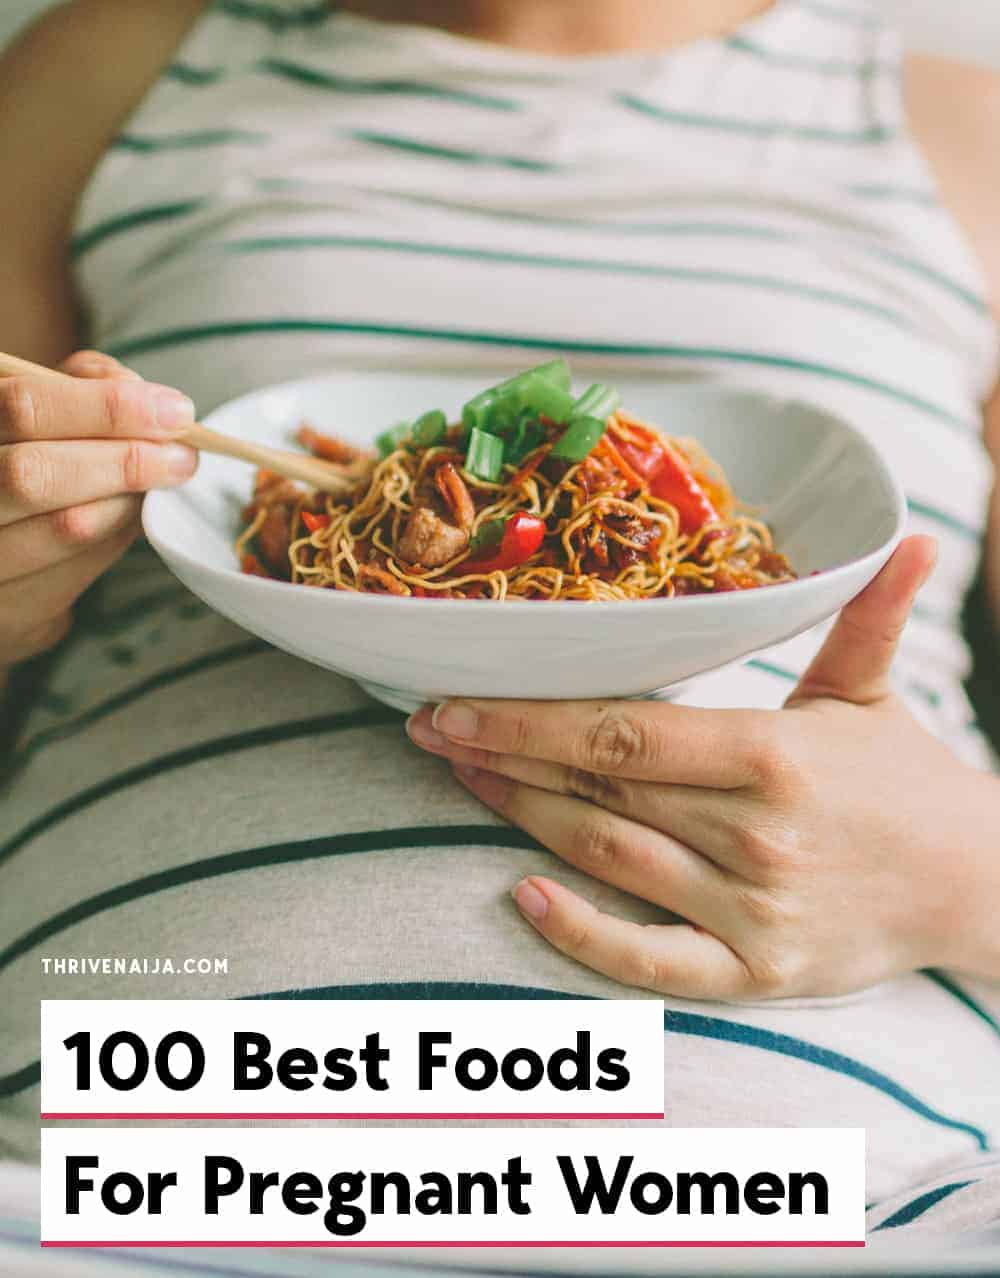 Best Foods For Pregnant Women